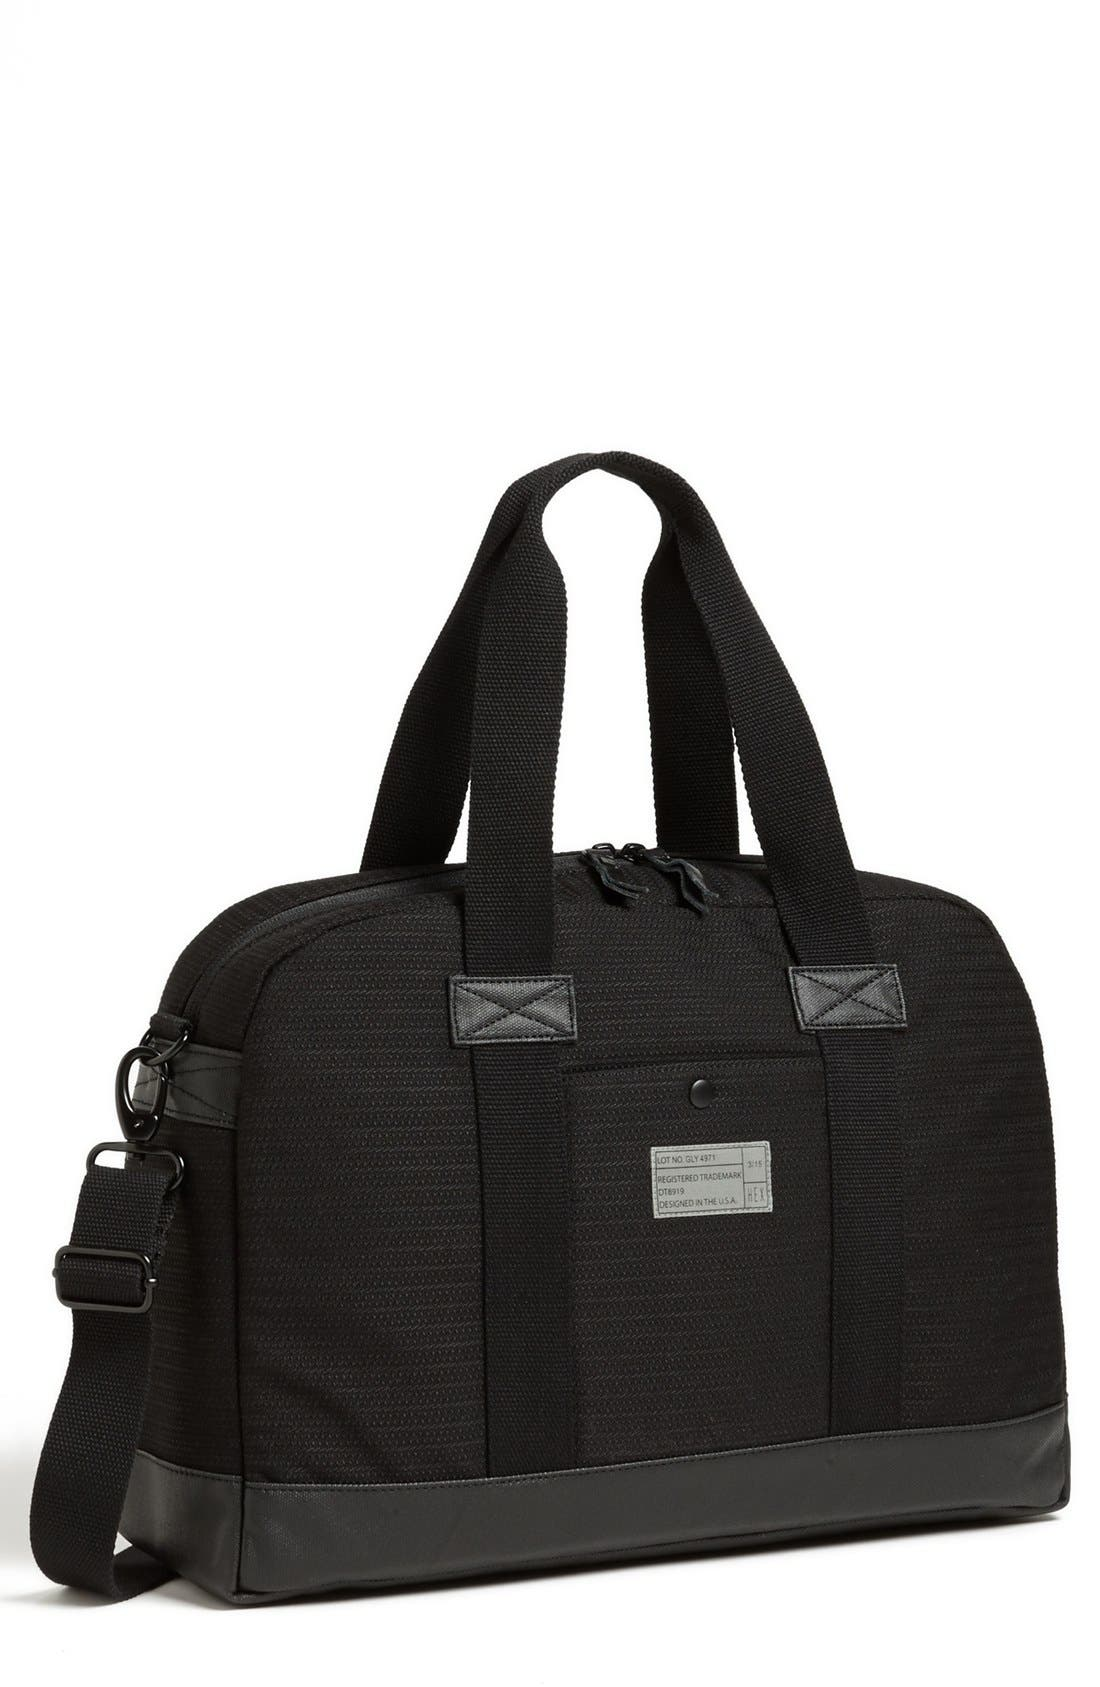 Alternate Image 1 Selected - HEX 'Gallery Collection' Laptop Duffel